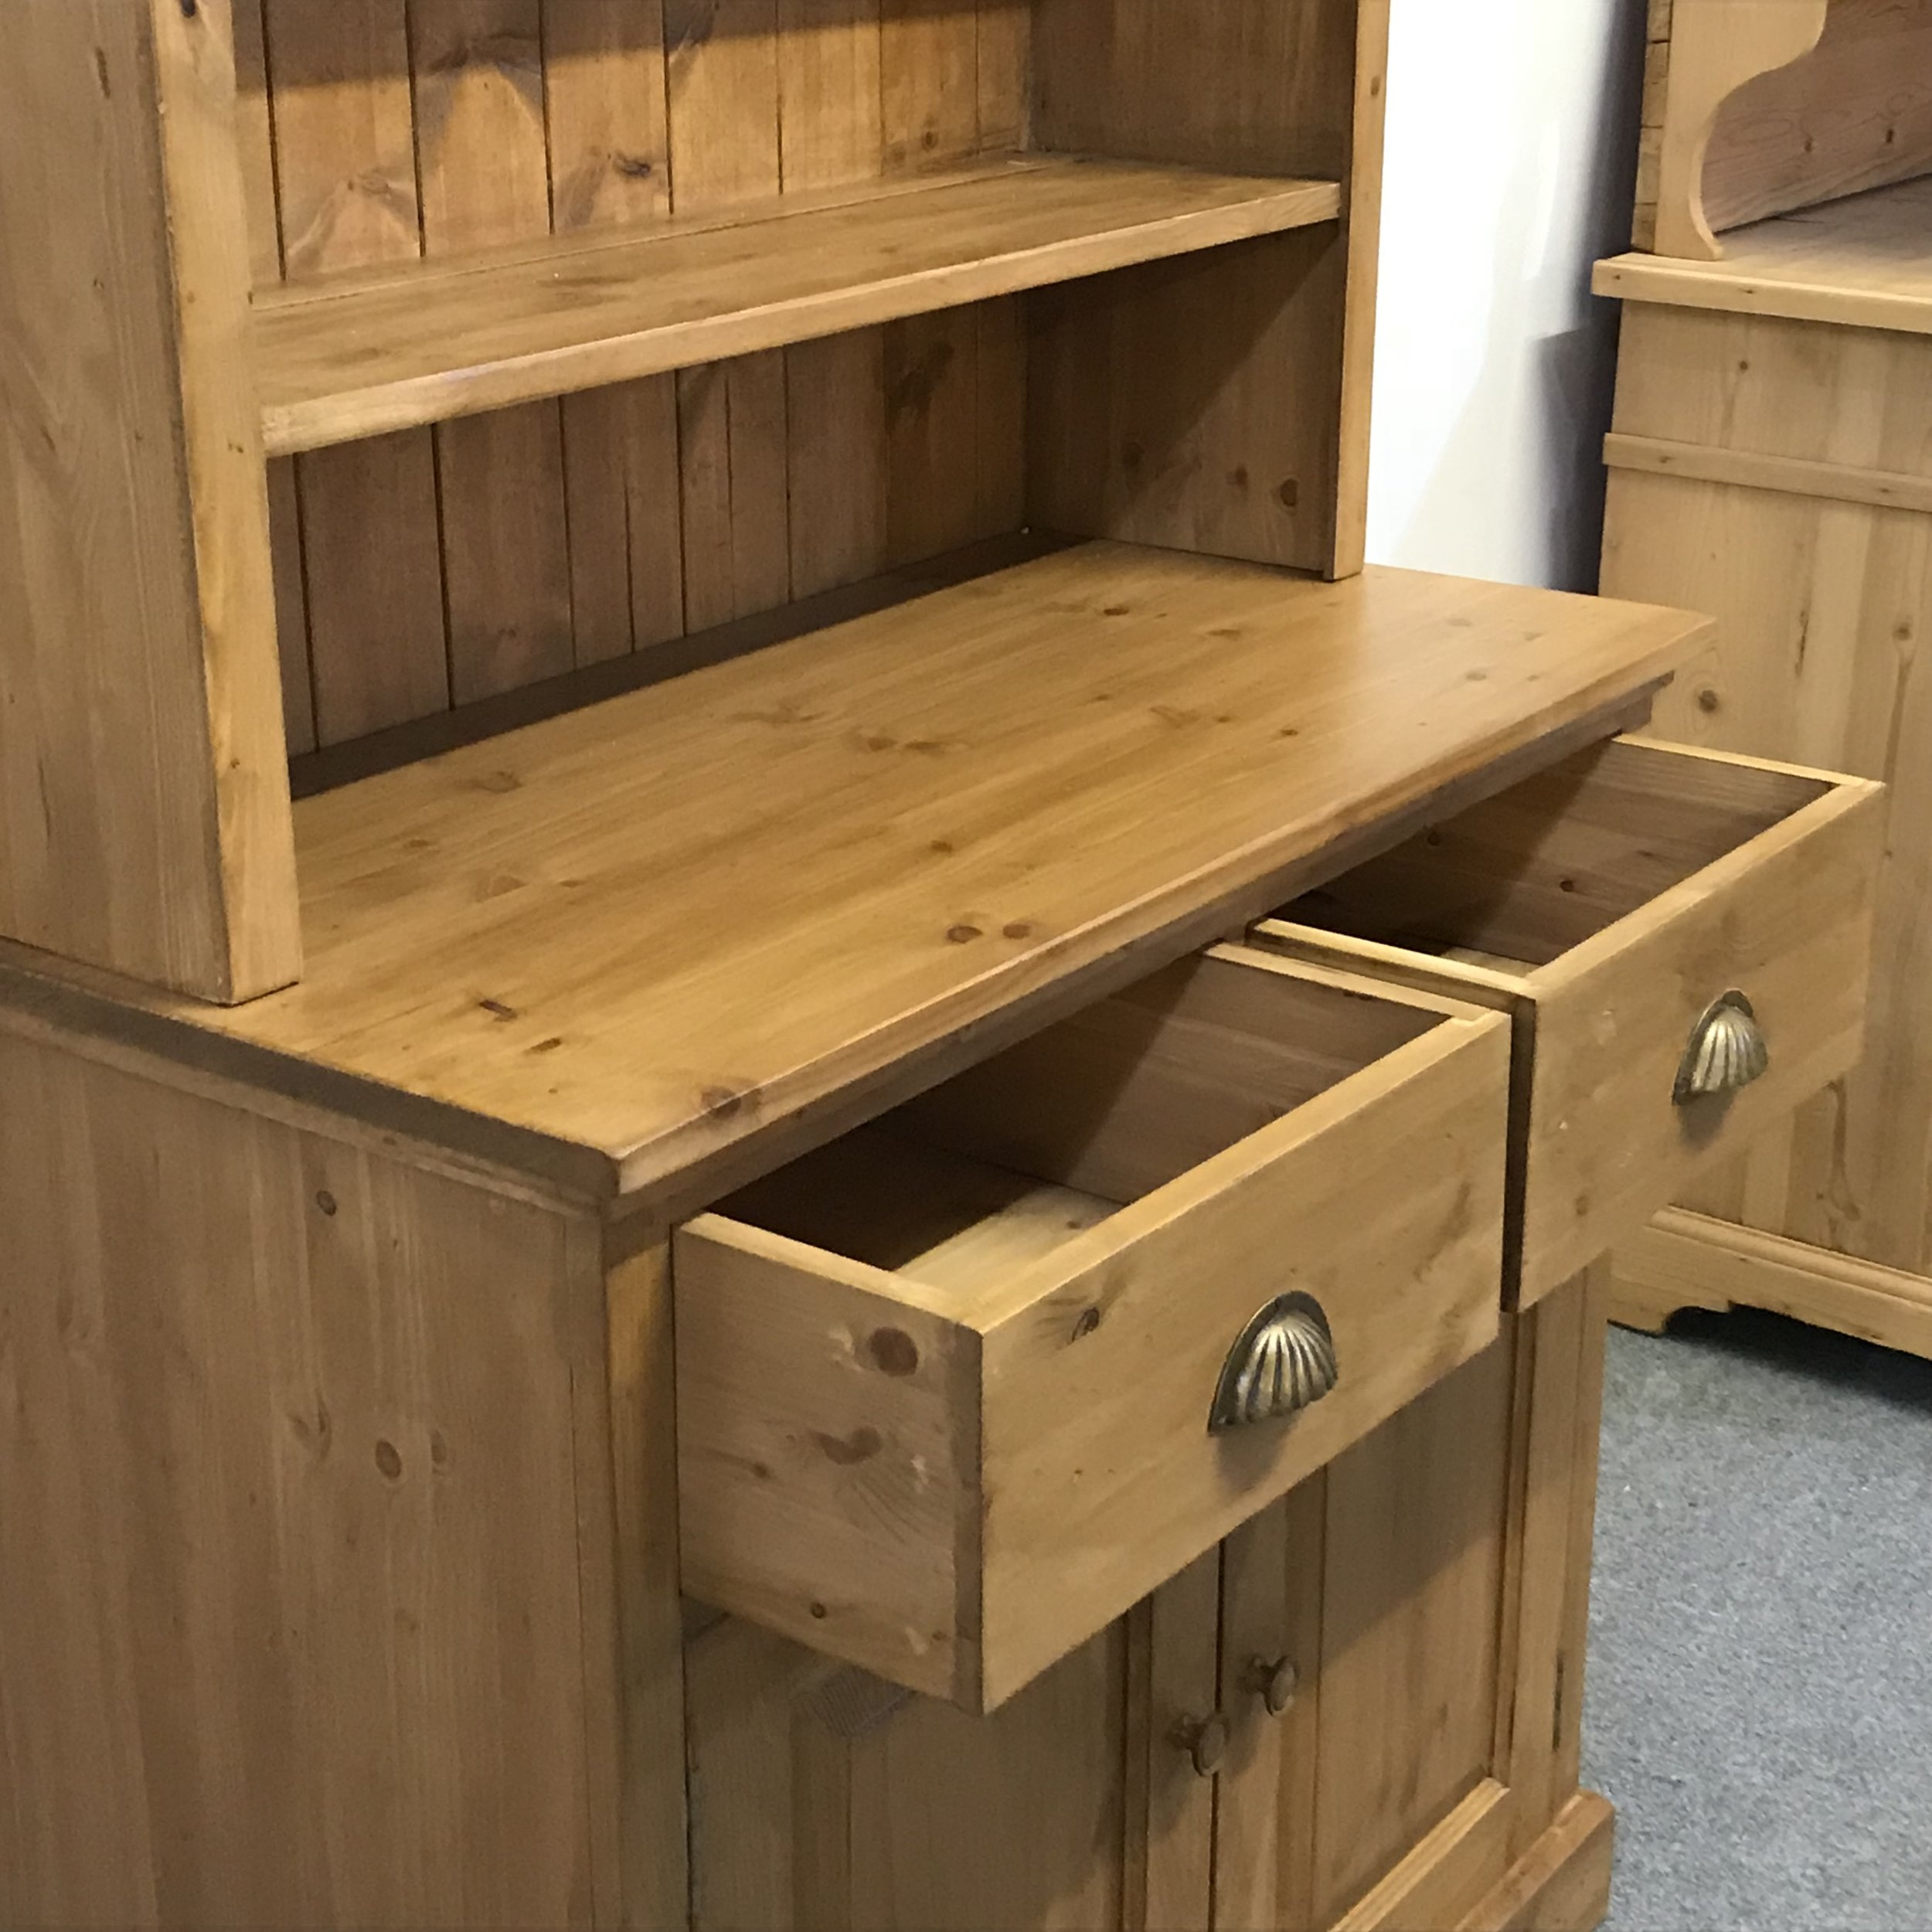 With or without drawers